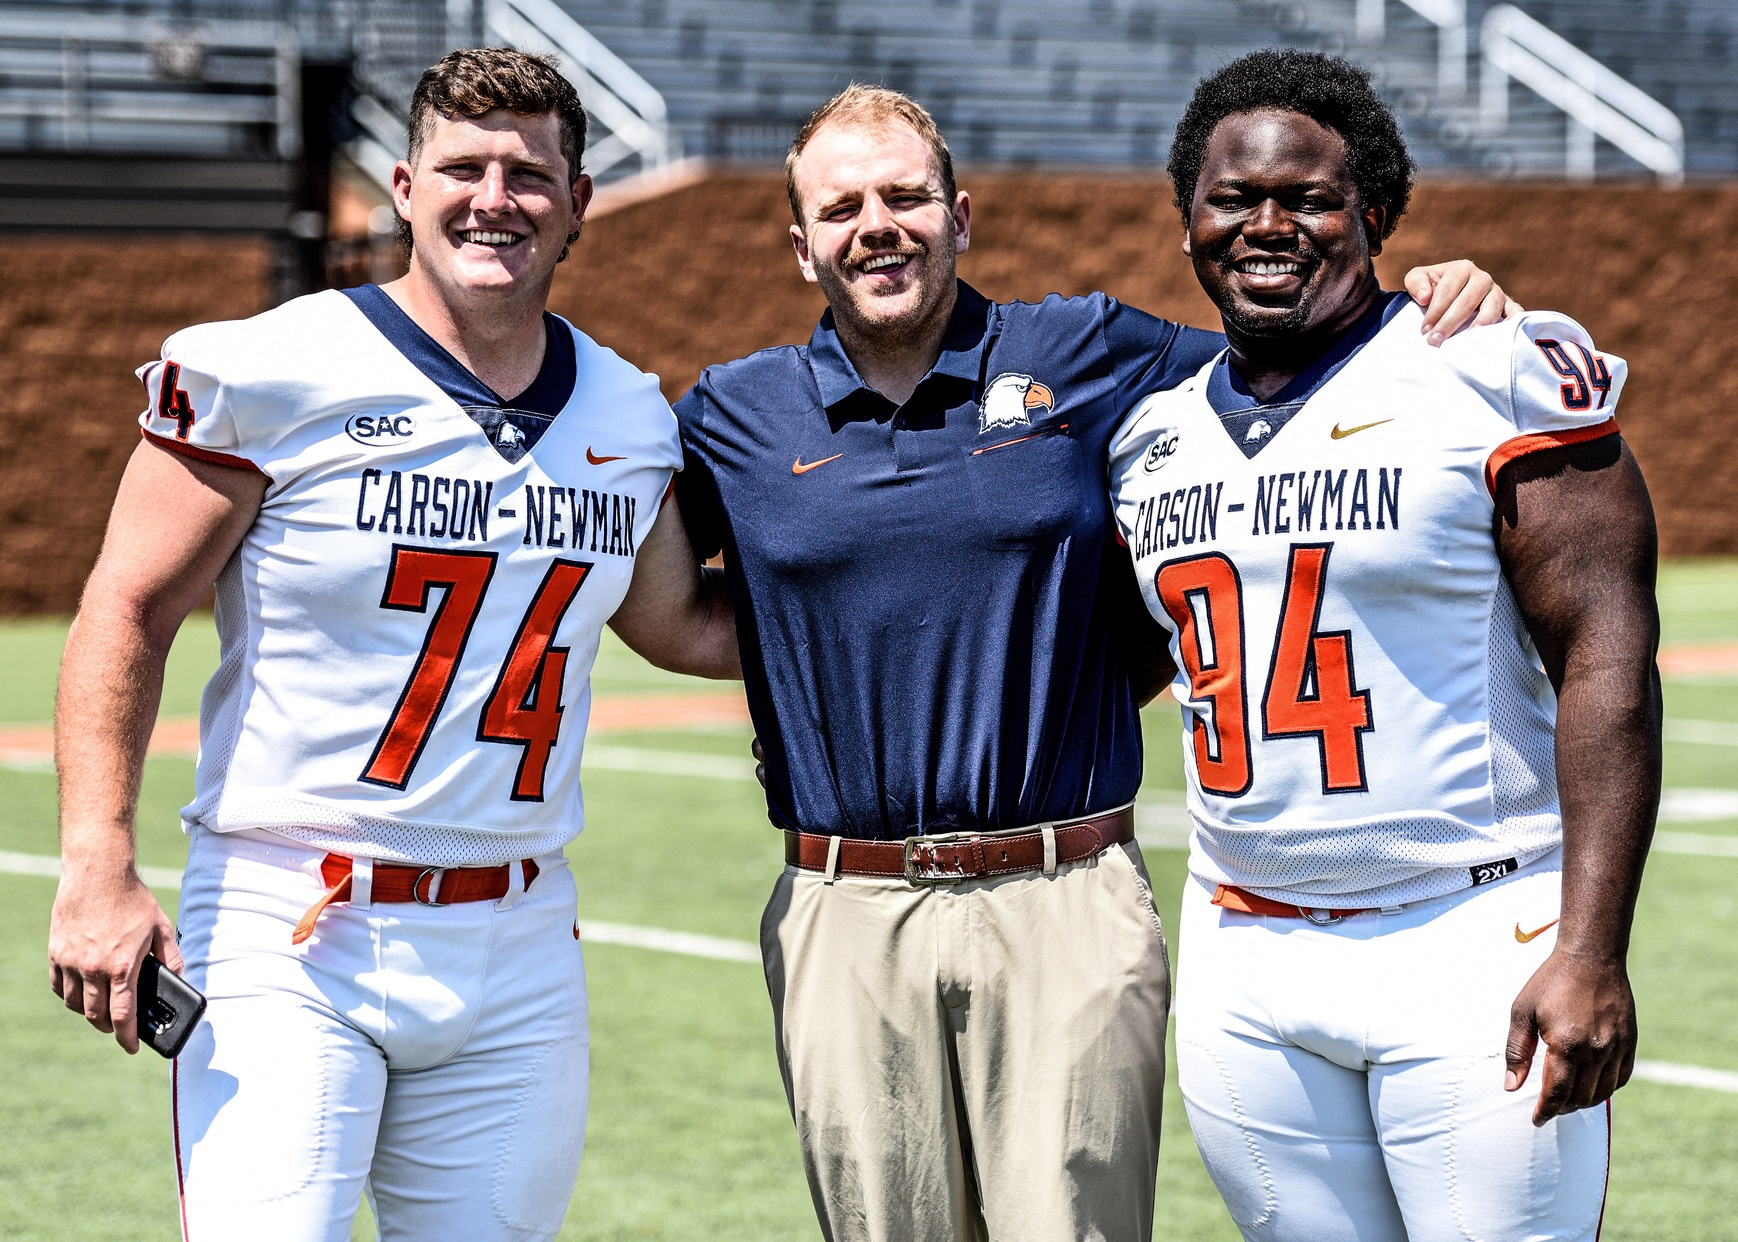 Carson-Newman Football Position Previews: The Defensive Line